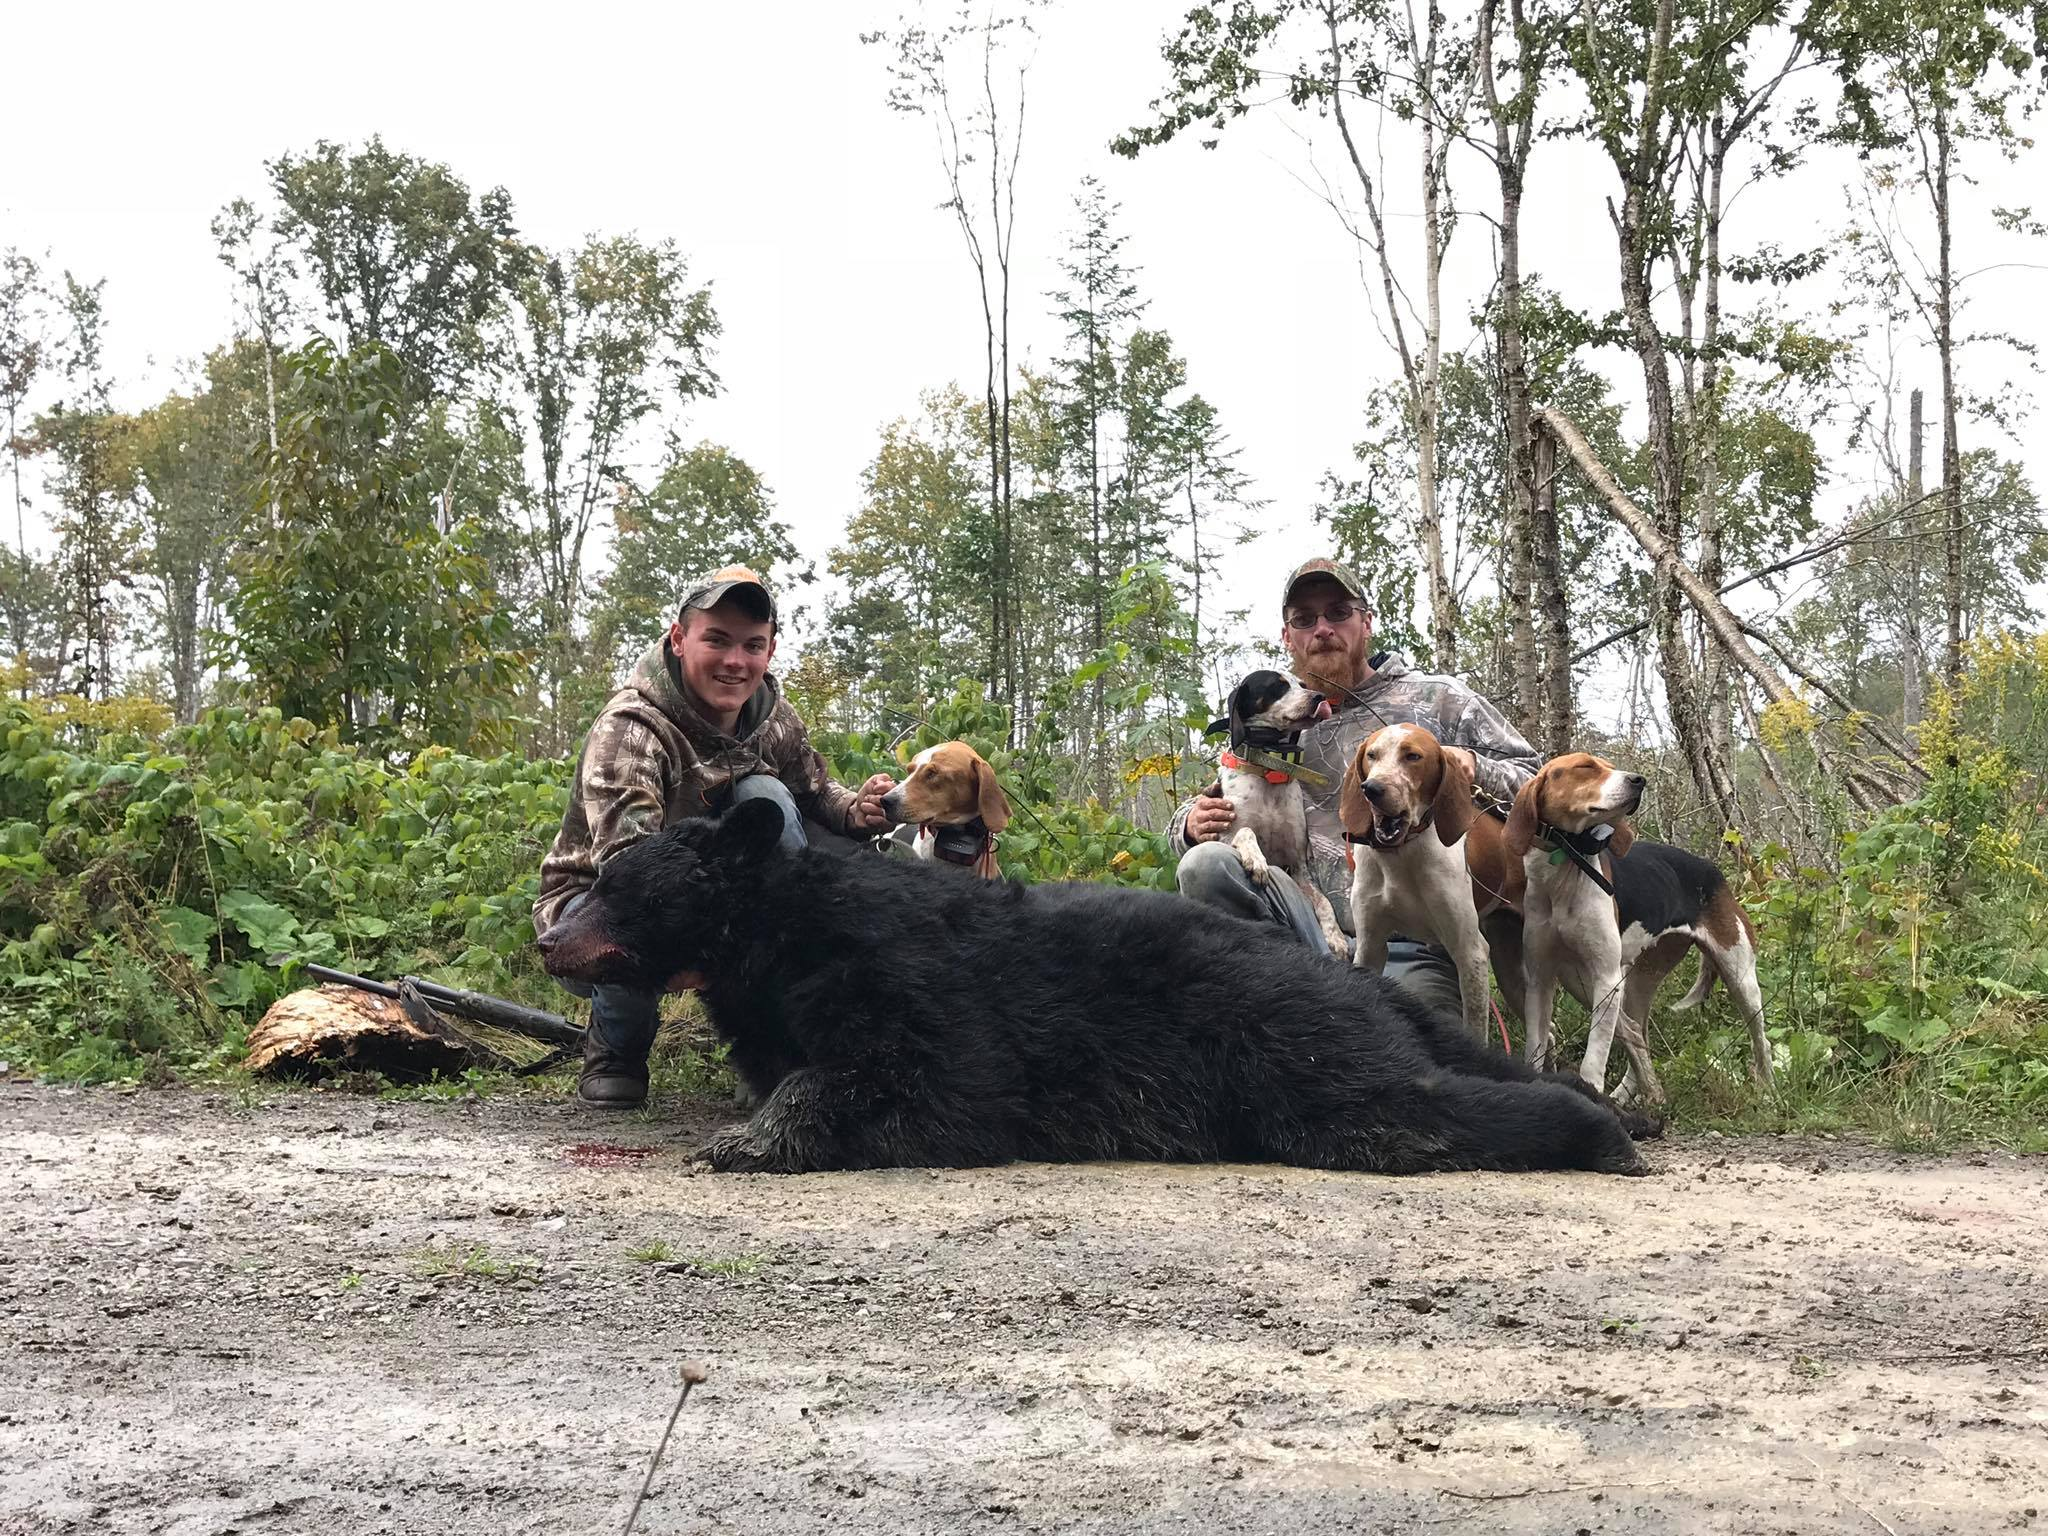 bear-hunt-with-hounds-15606214652117524538